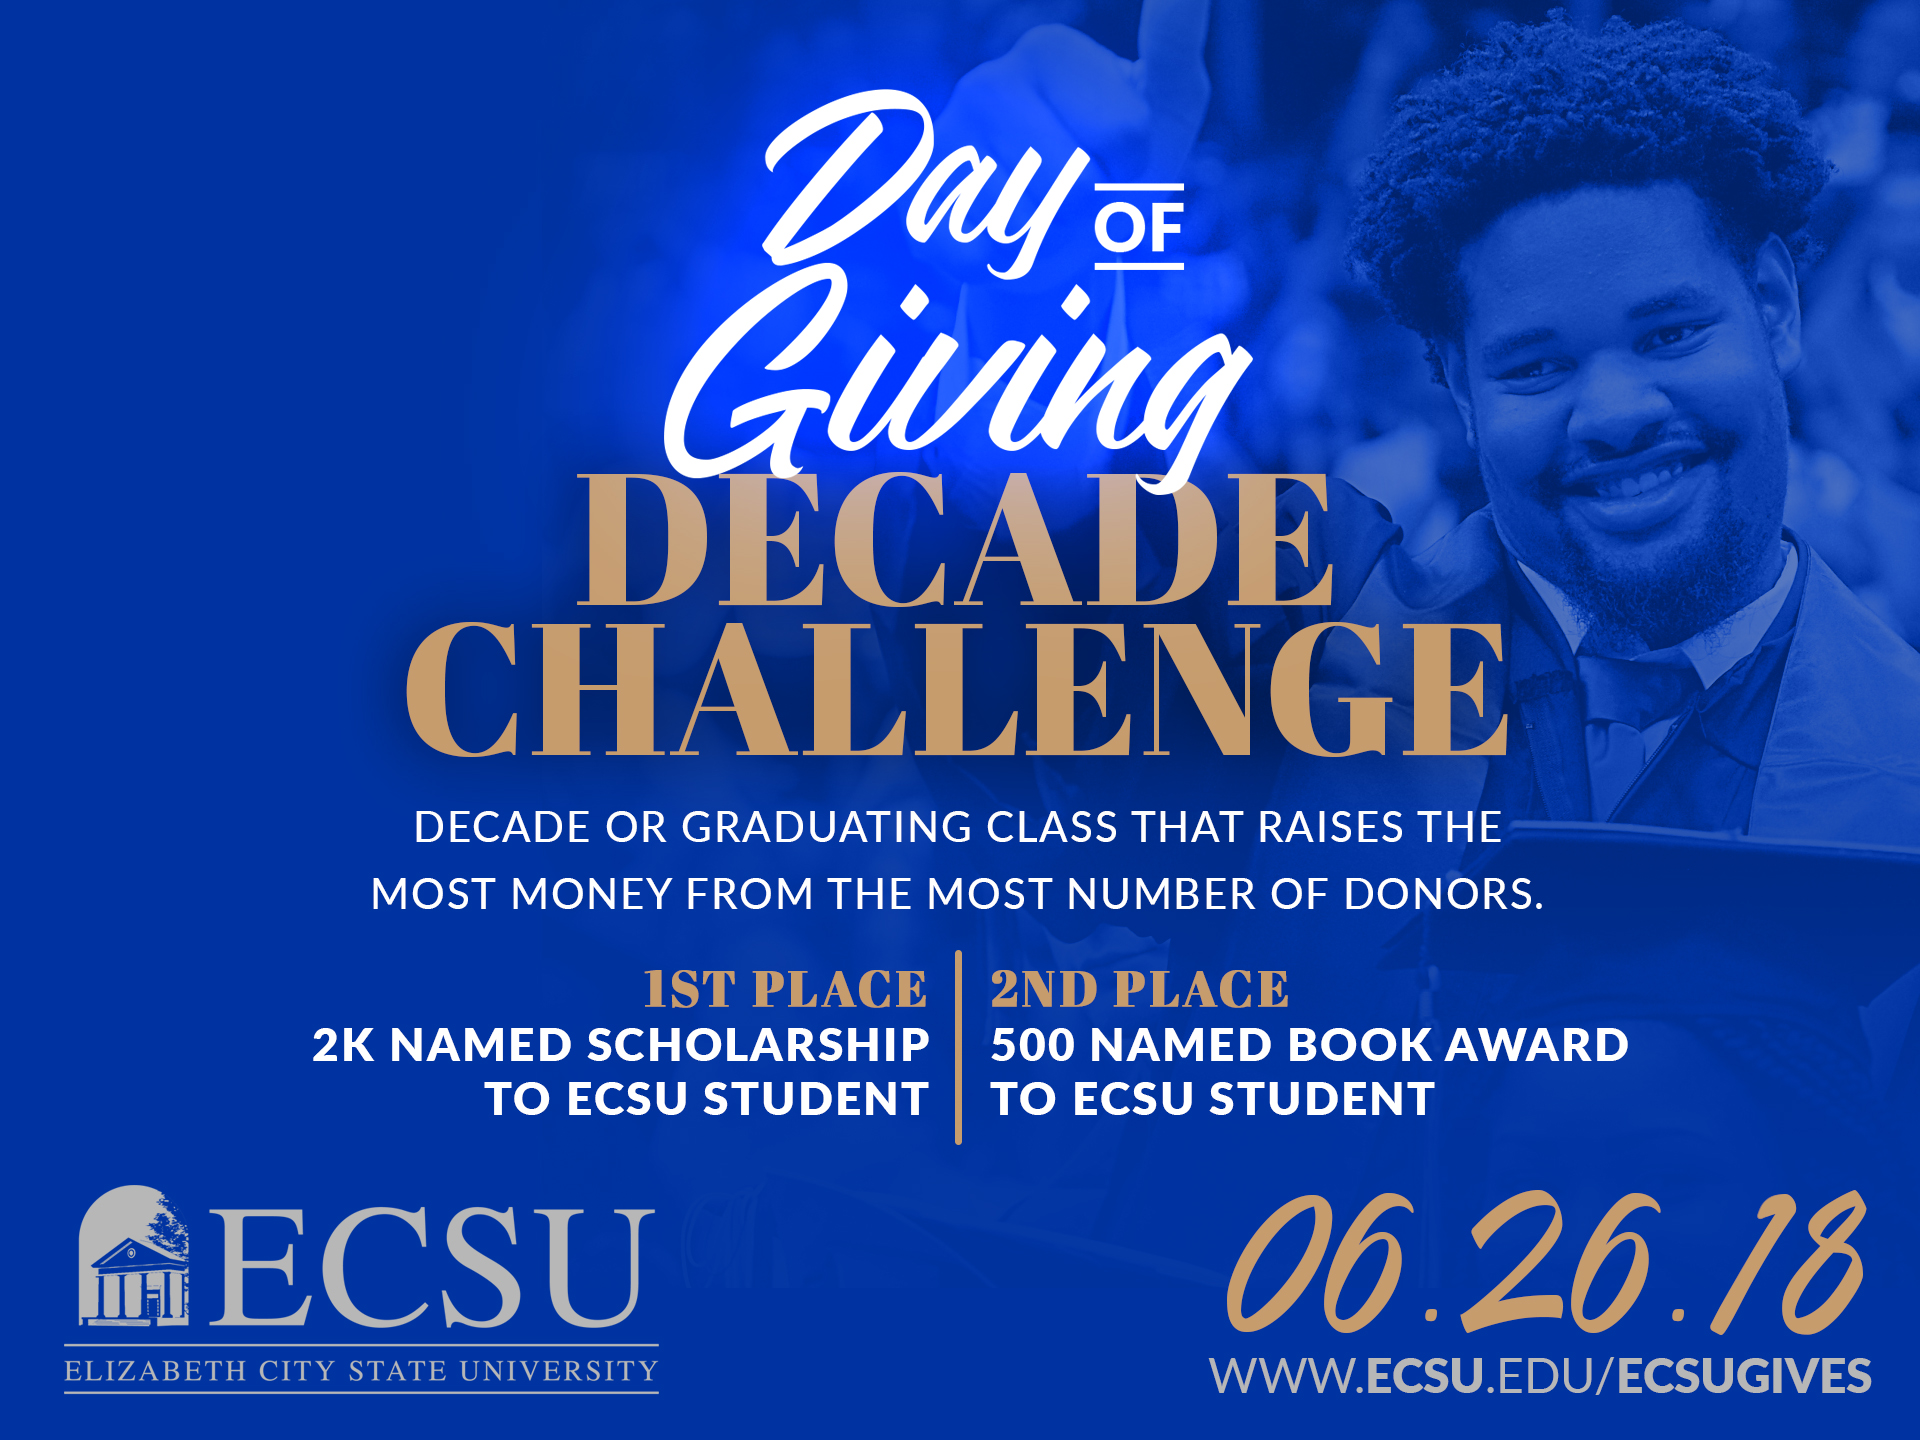 Ecsu day of giving decade challenge5